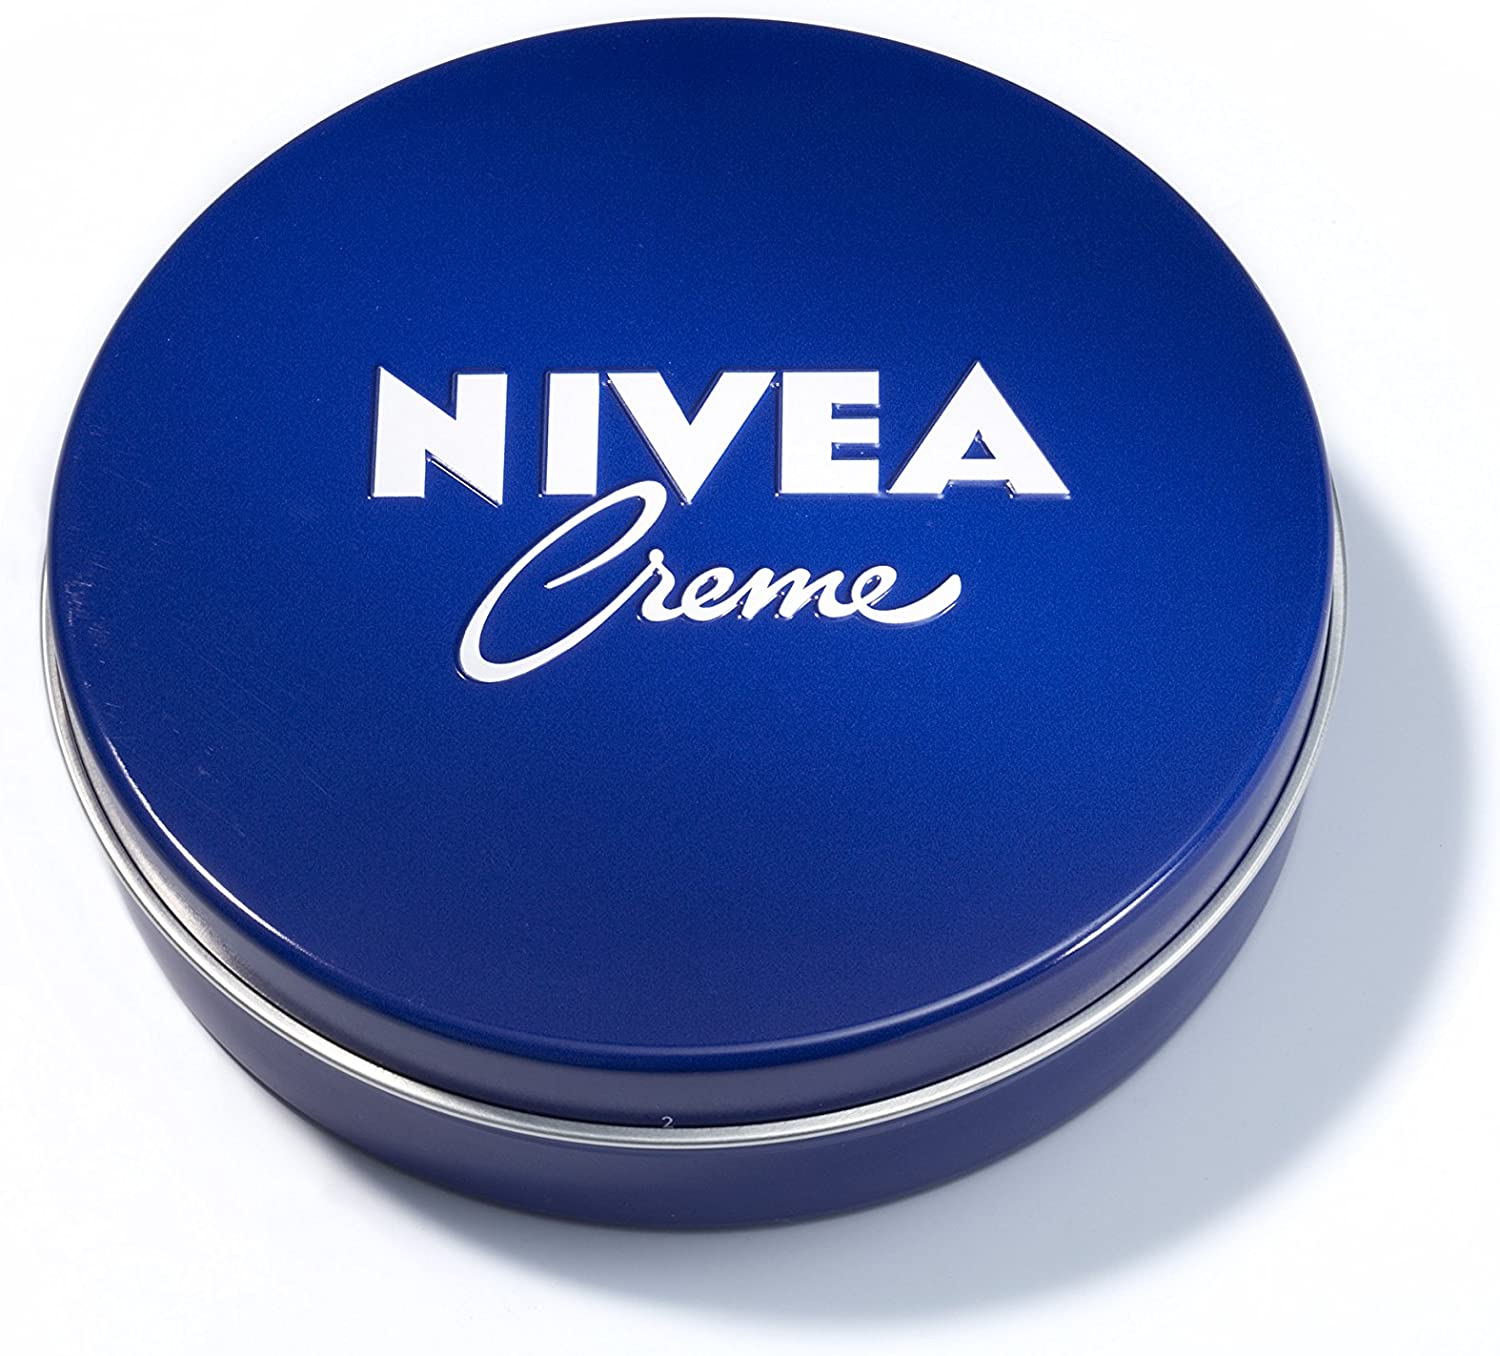 Nivea - Crema hidratante, pack de 5 (5 x 75 ml): Amazon.es: Belleza